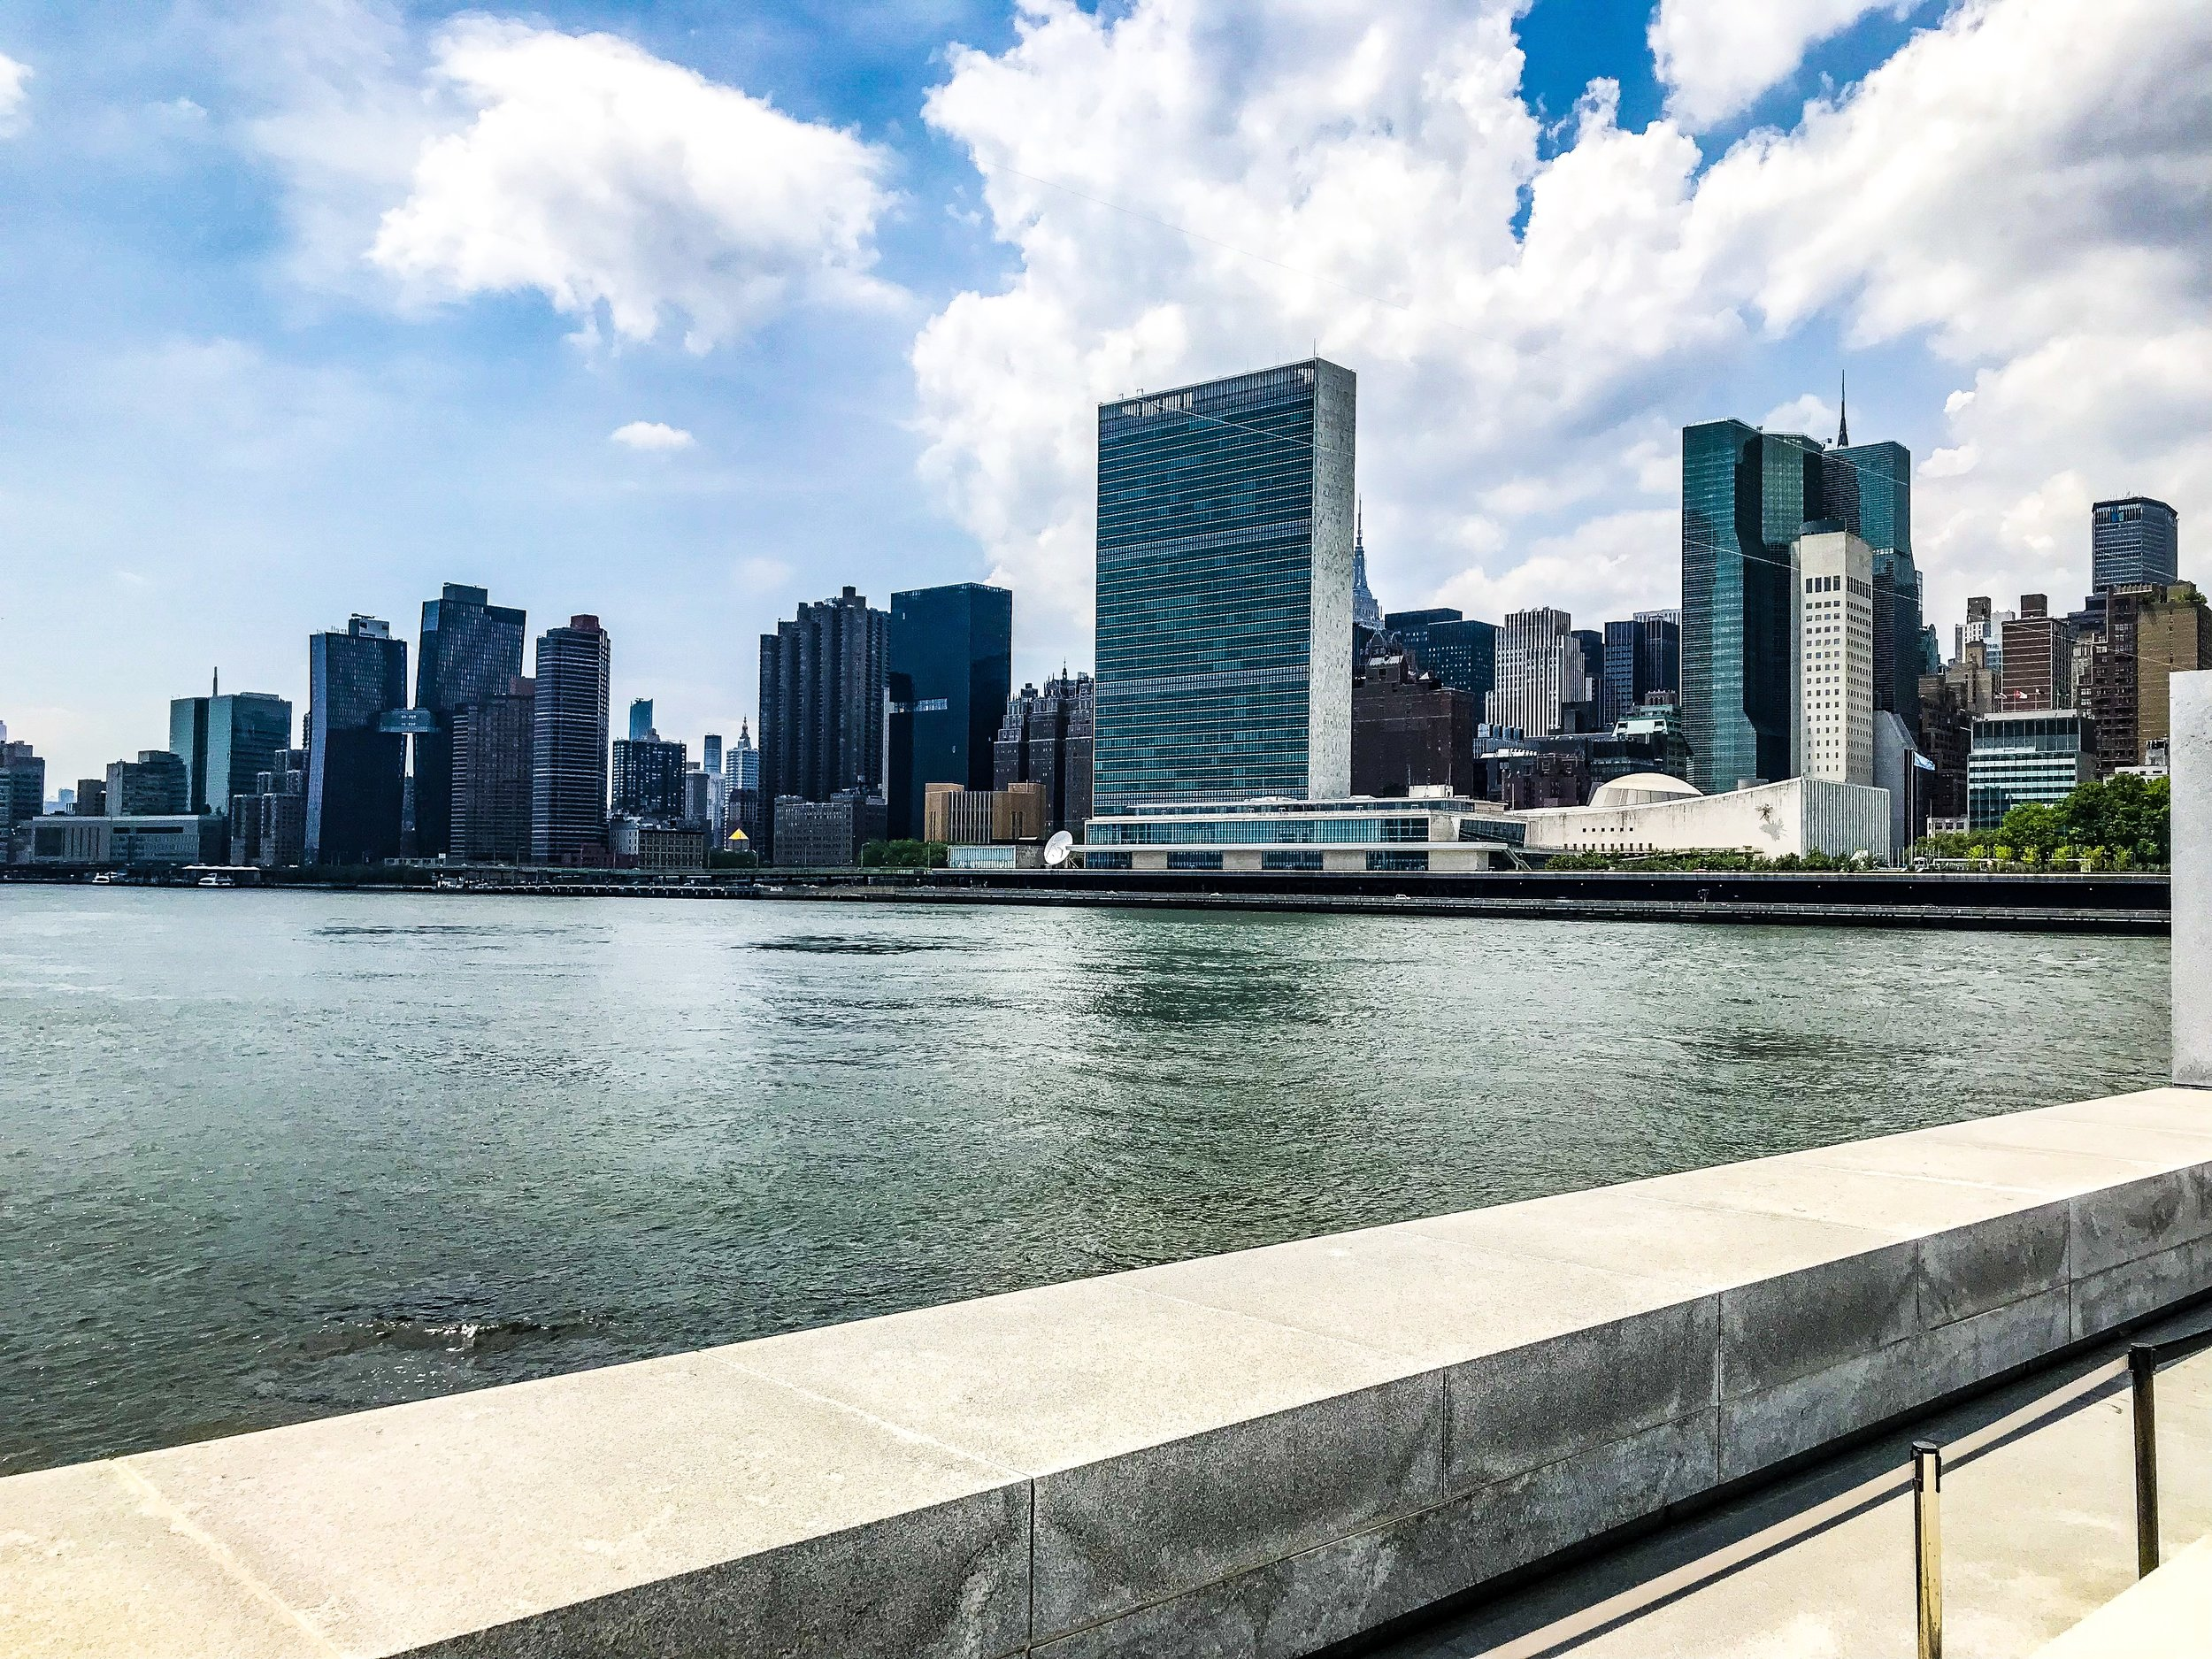 View of Manhattan once reaching the end of the Four Freedoms Park